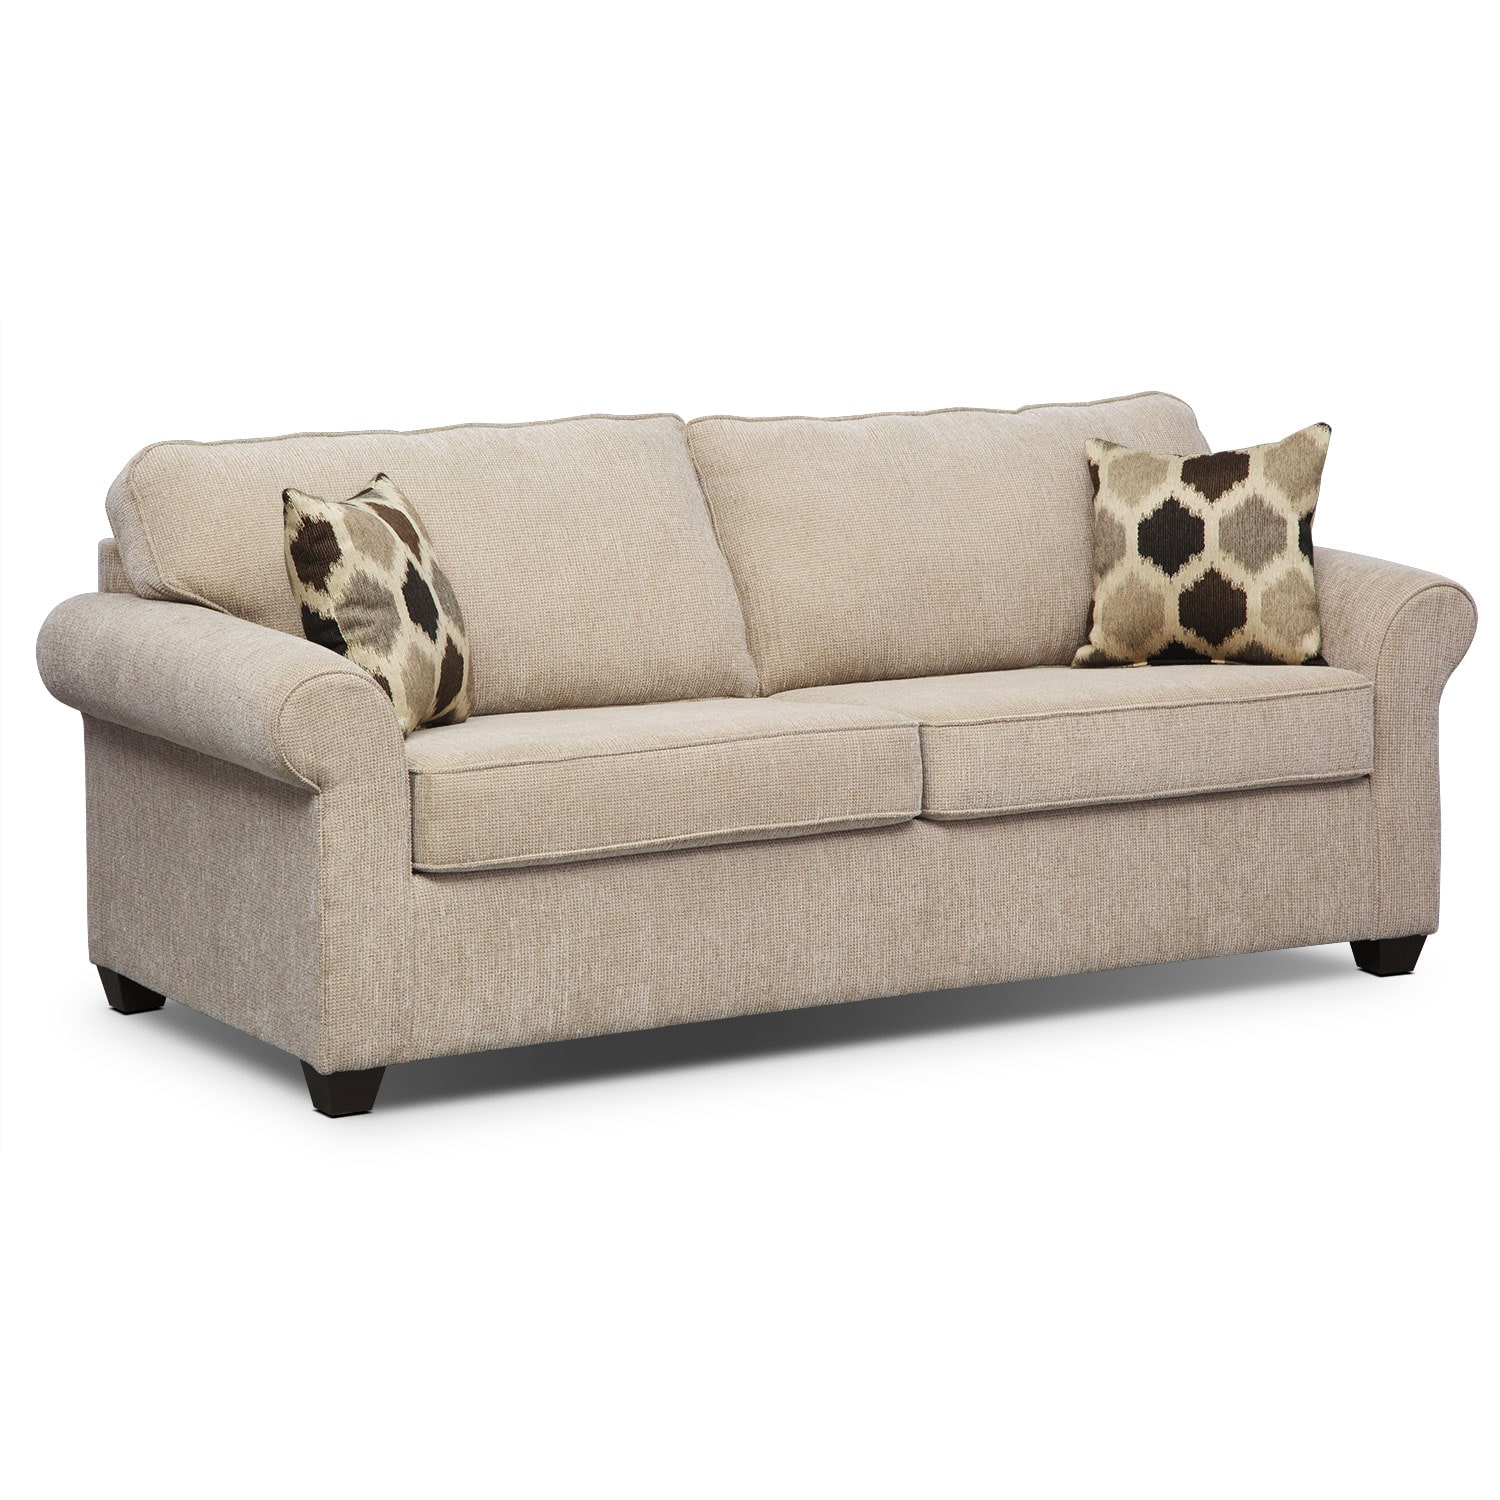 Fletcher Queen Memory Foam Sleeper Sofa - Beige